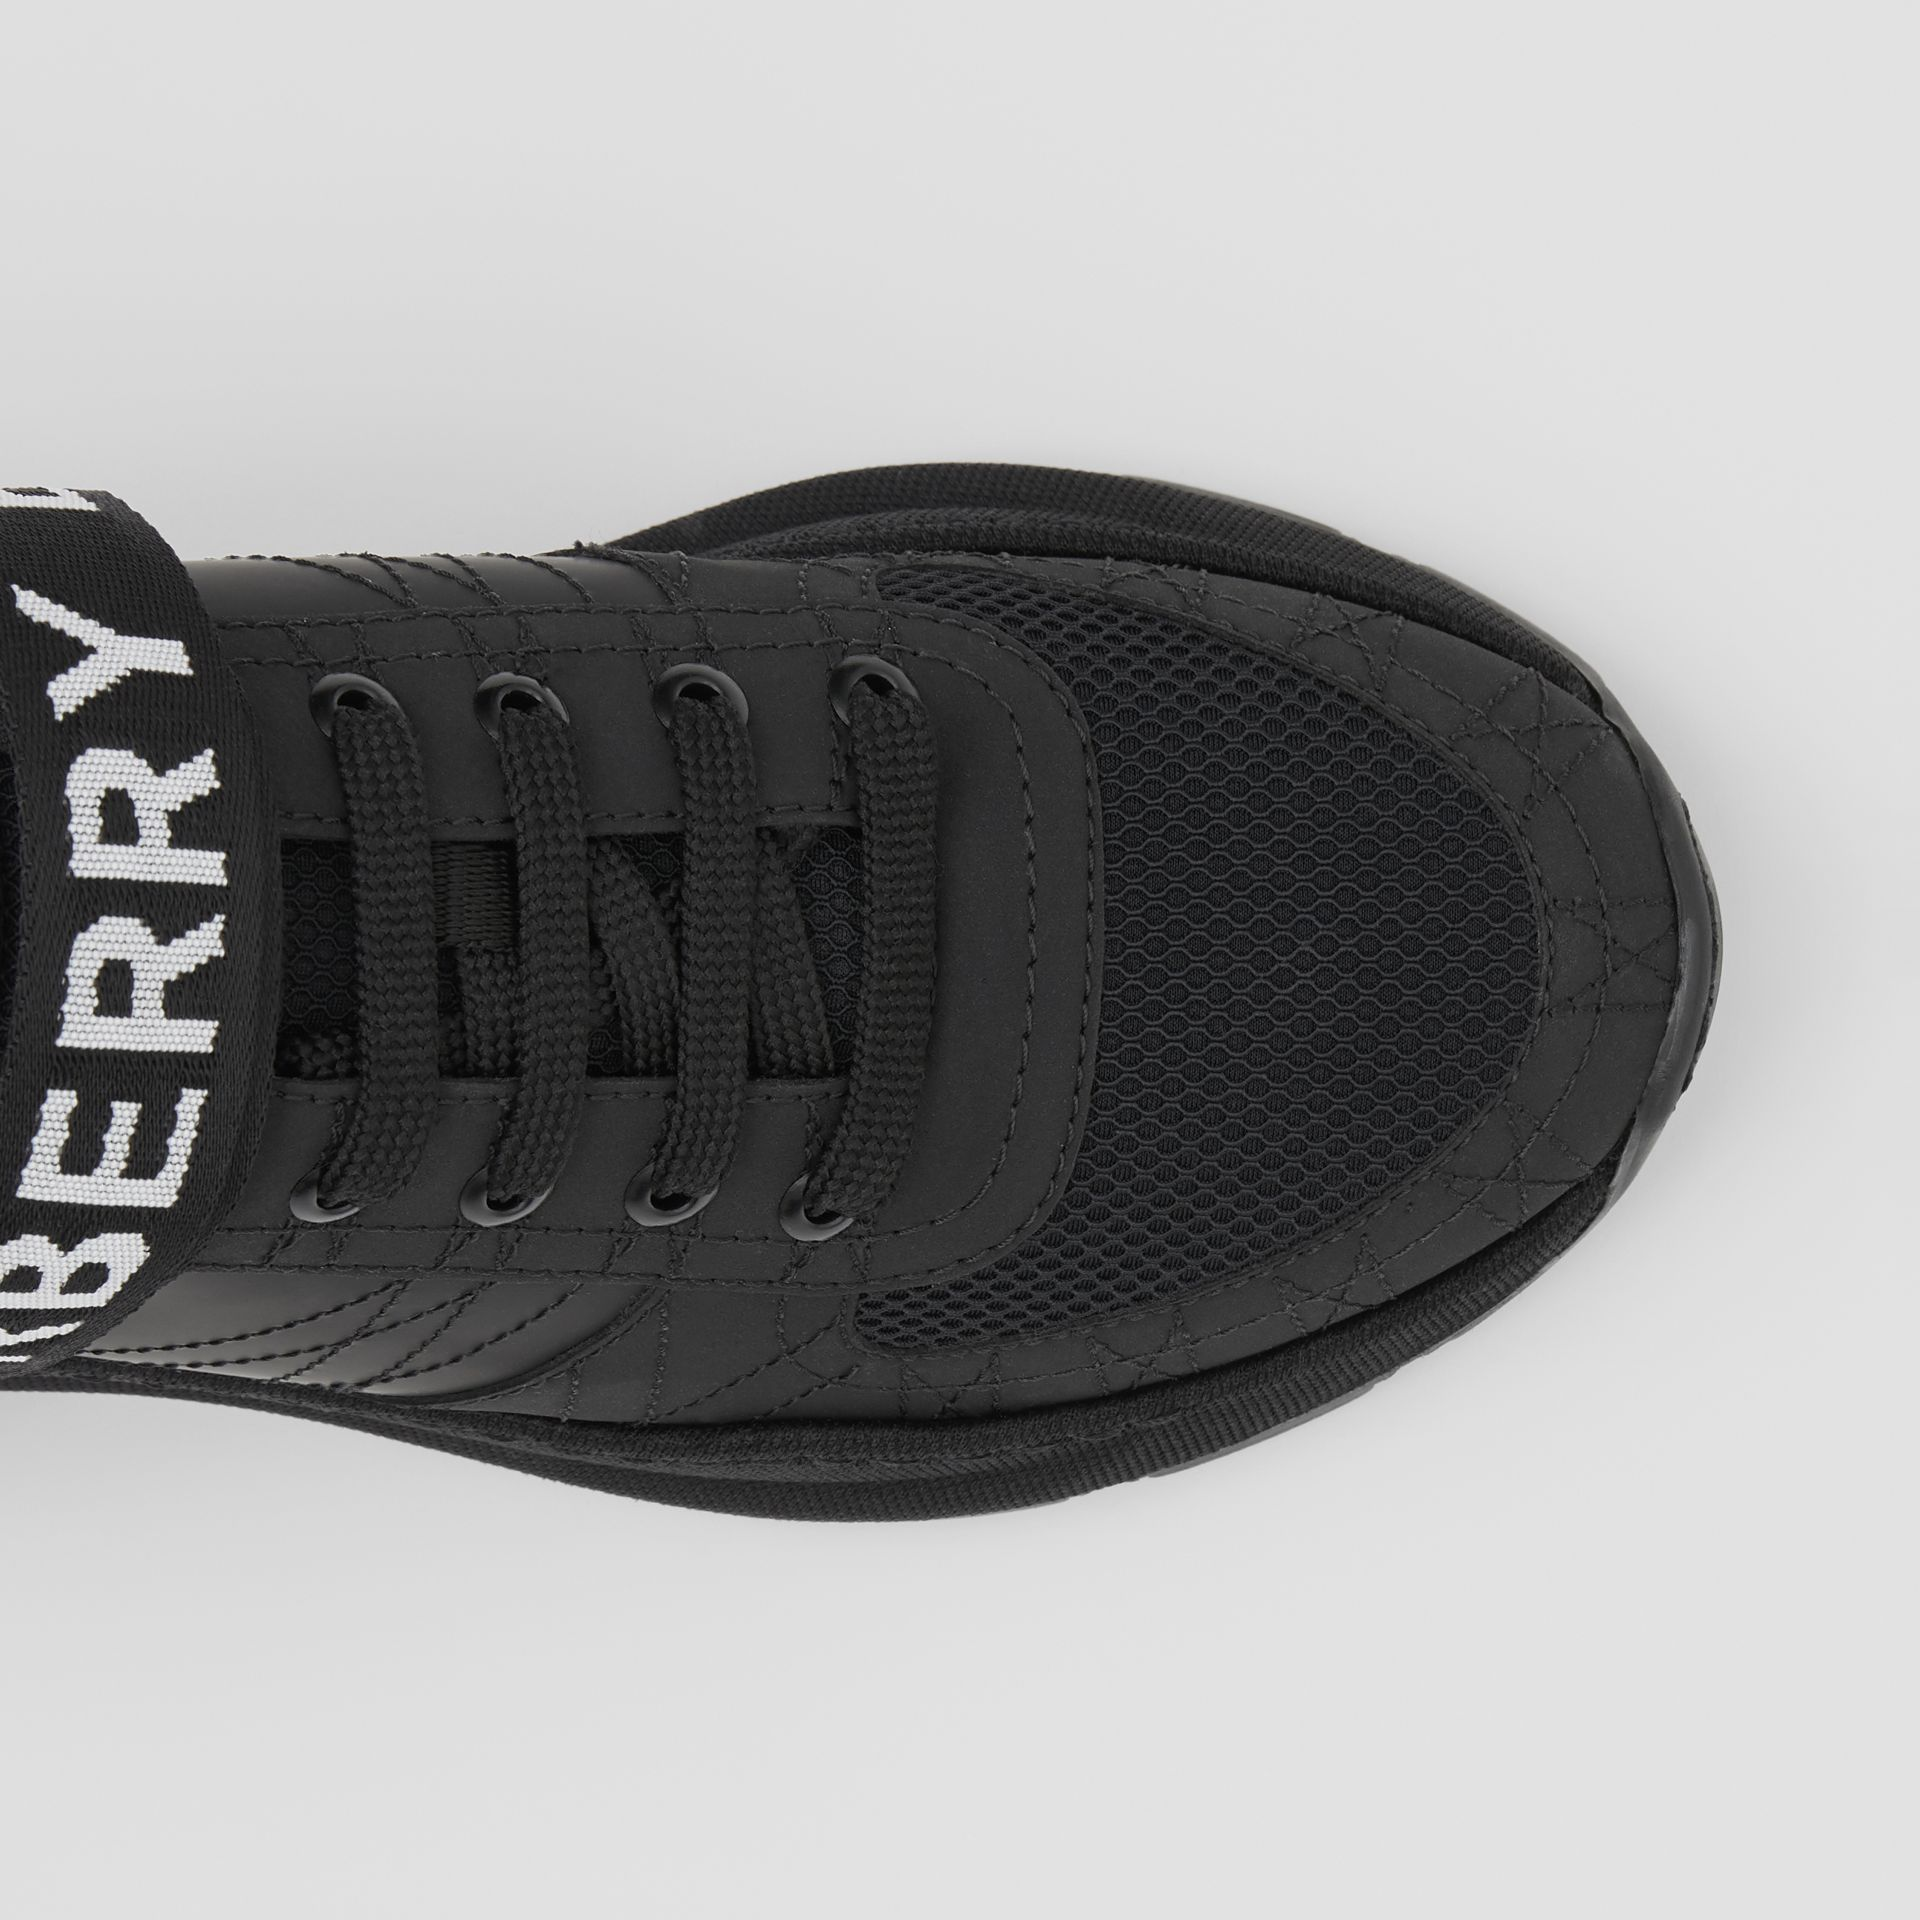 Logo Detail Leather, Nubuck and Mesh Sneakers in Black - Women | Burberry United Kingdom - gallery image 1